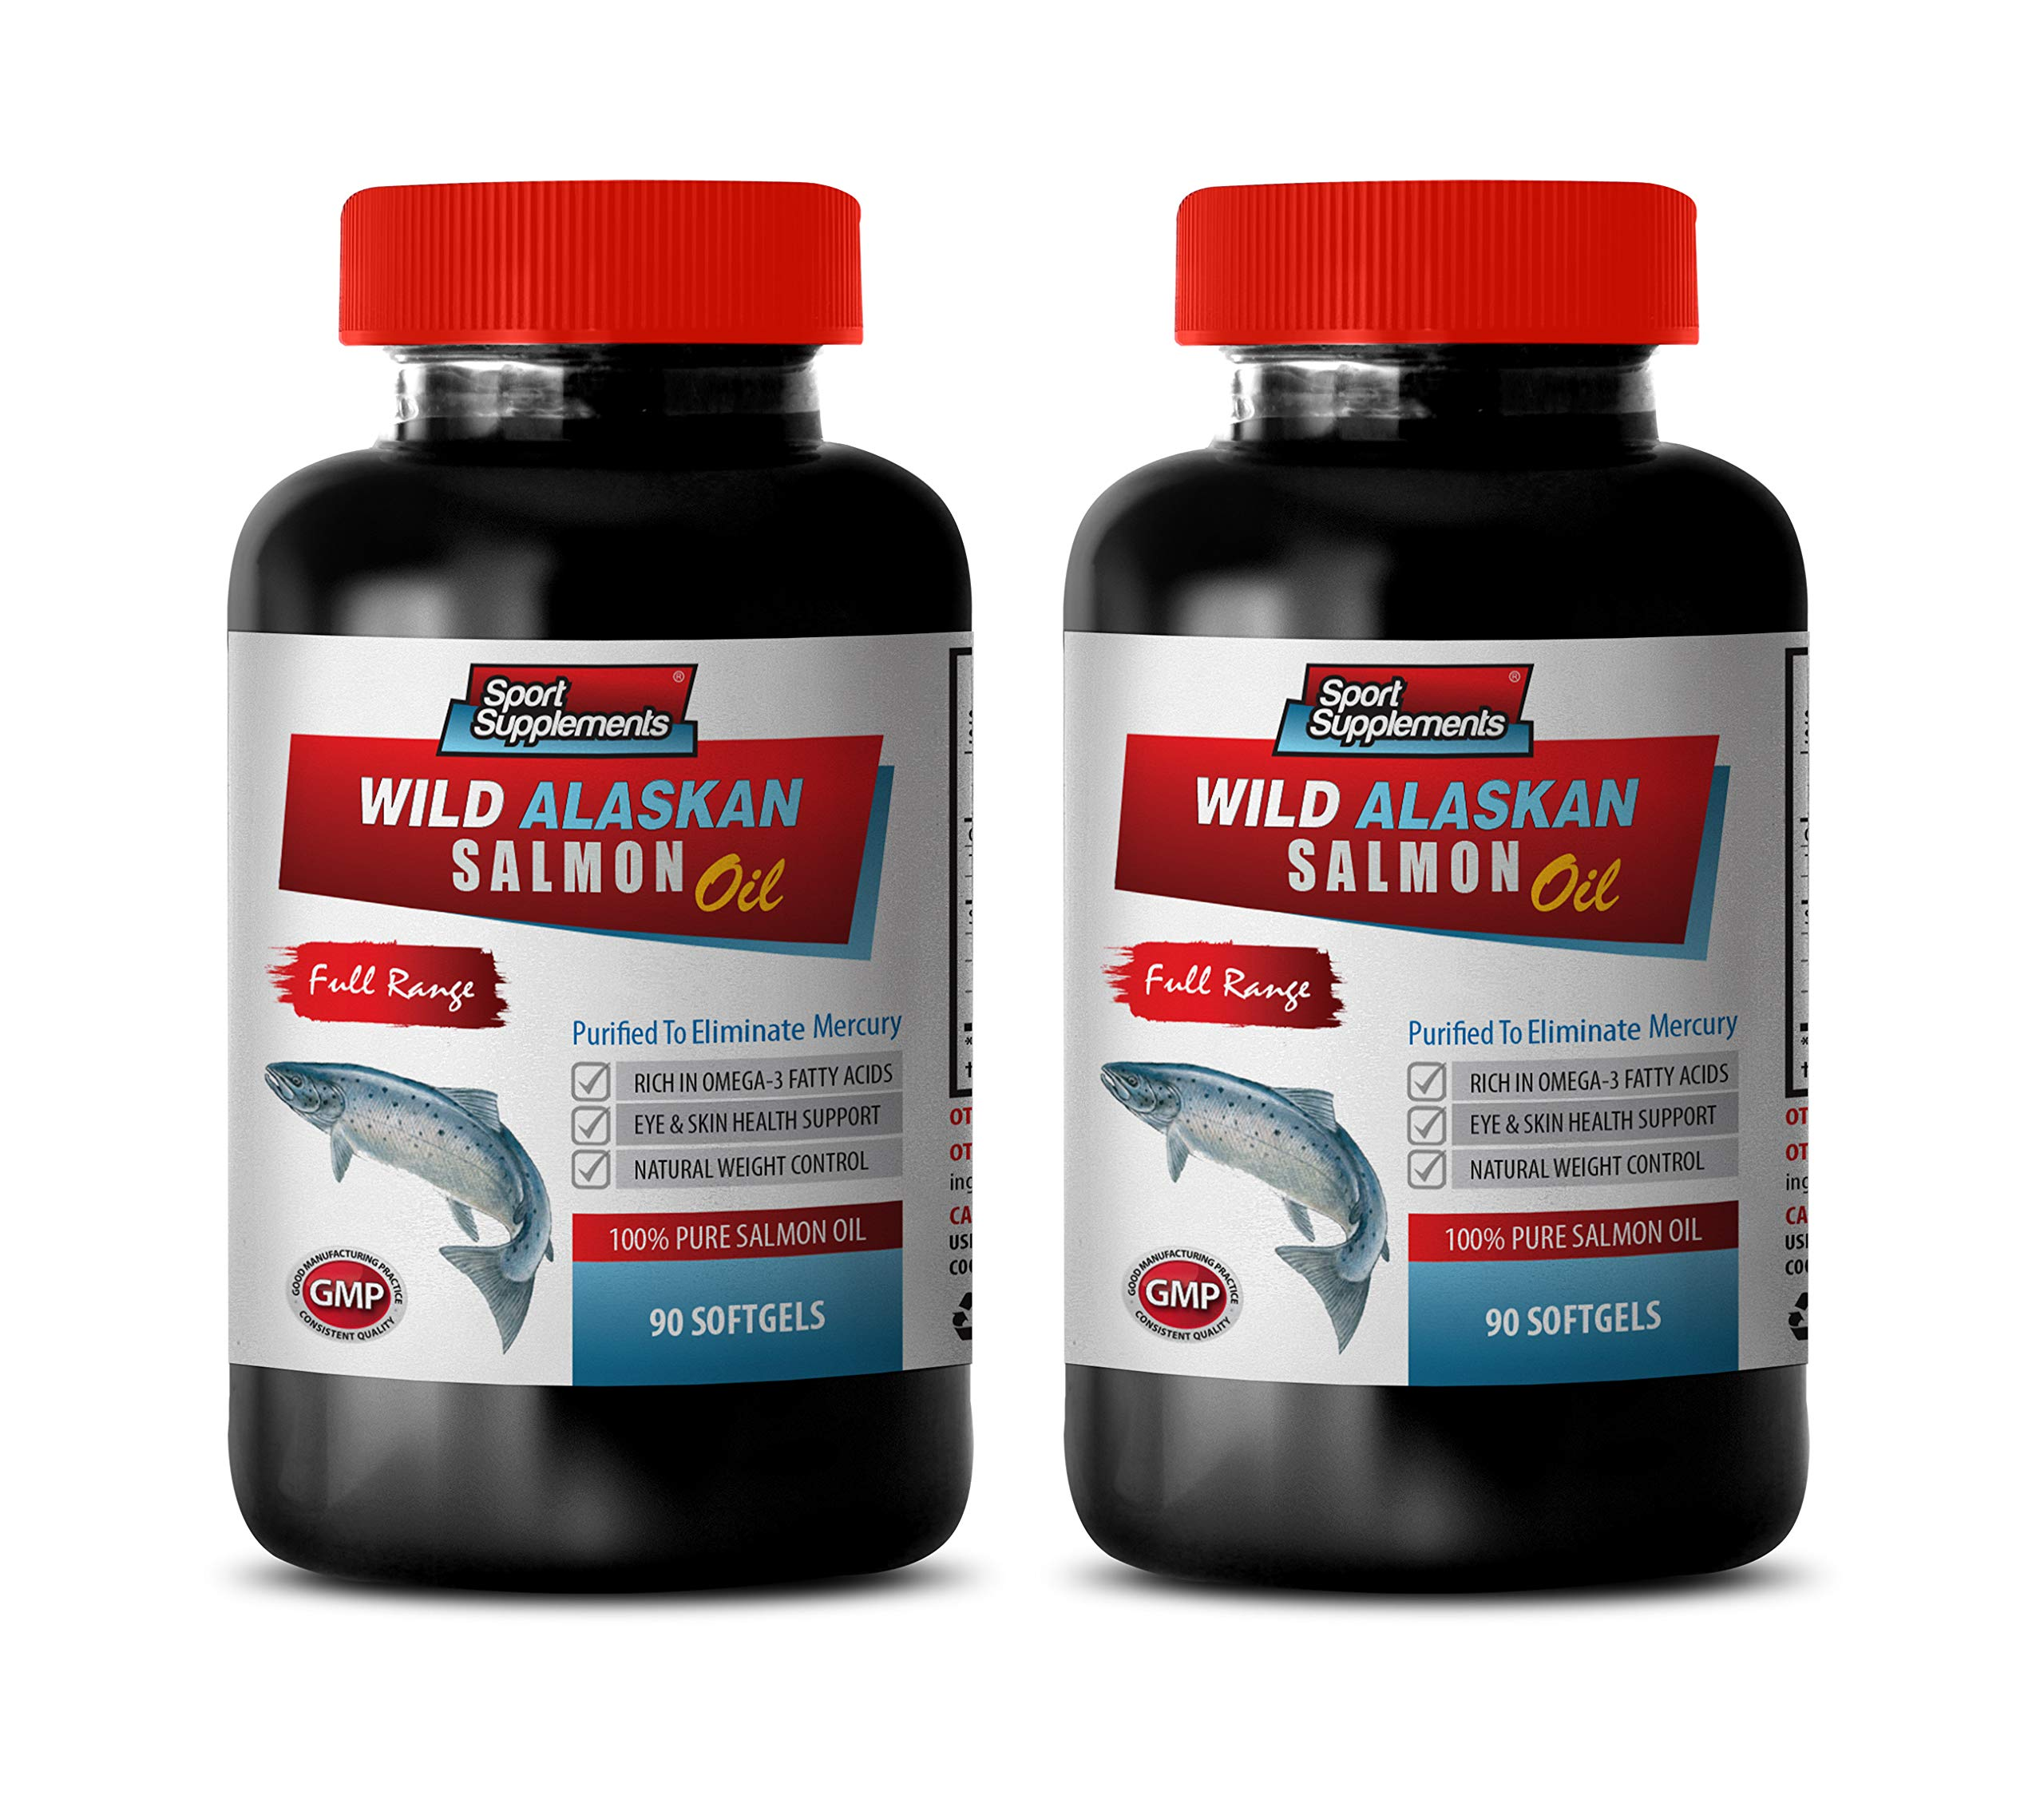 Cholesterol lowering Products - Wild Alaskan 100% Pure Salmon Oil - Fish Oil Bulk Supplements - 2 Bottles 180 Softgels by Sport Supplements